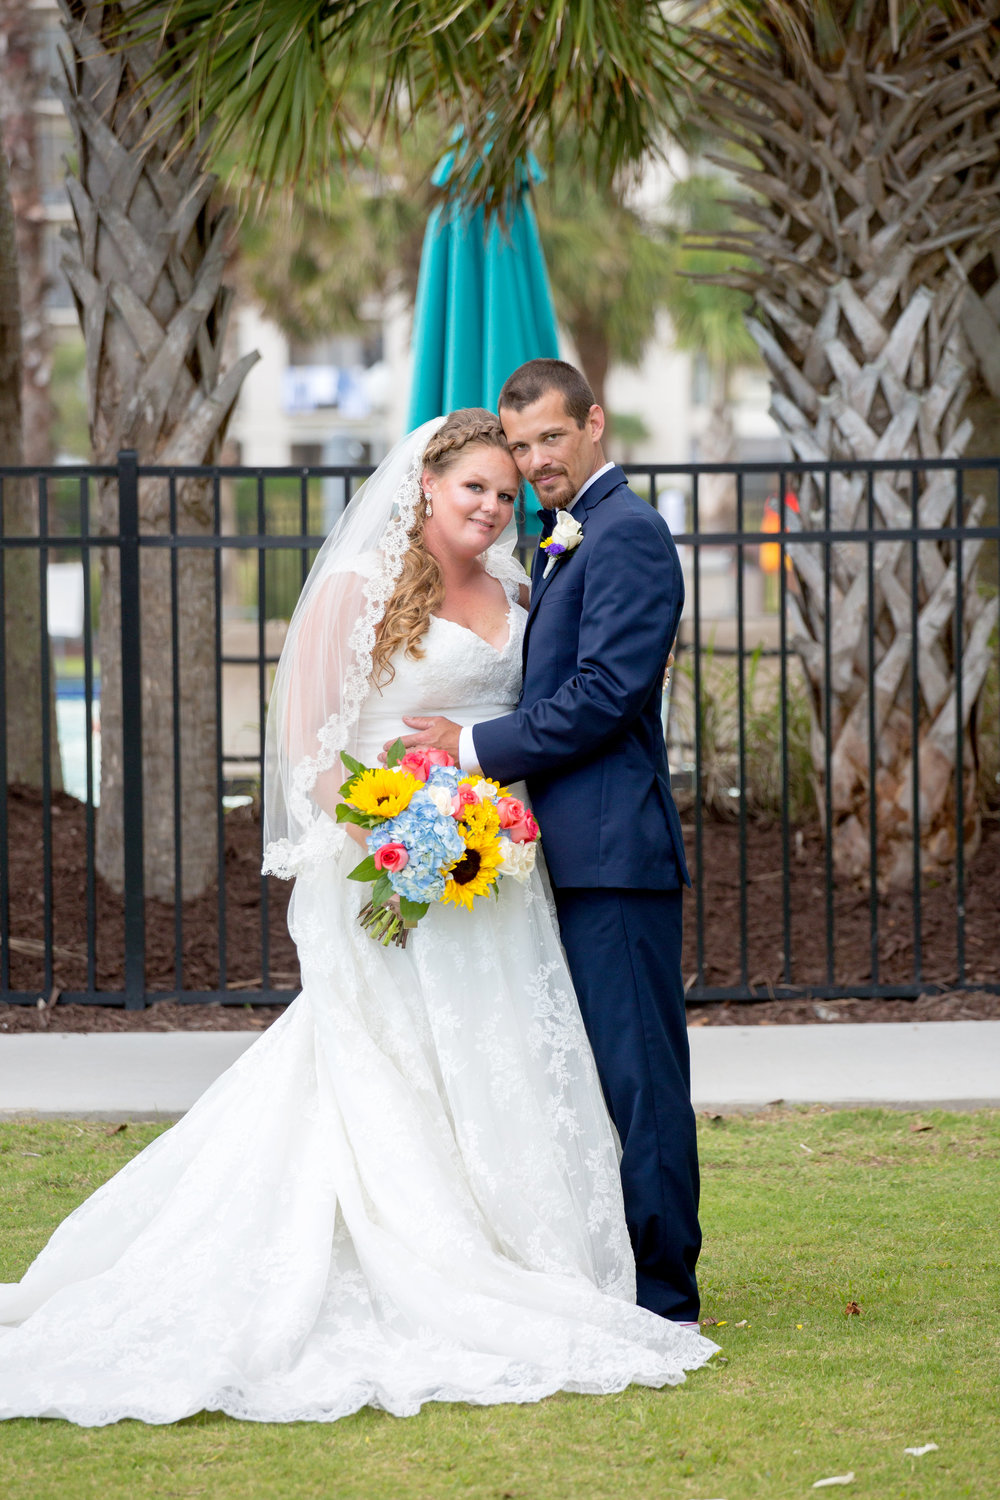 Summer Destination Wedding - Myrtle Beach24.jpg